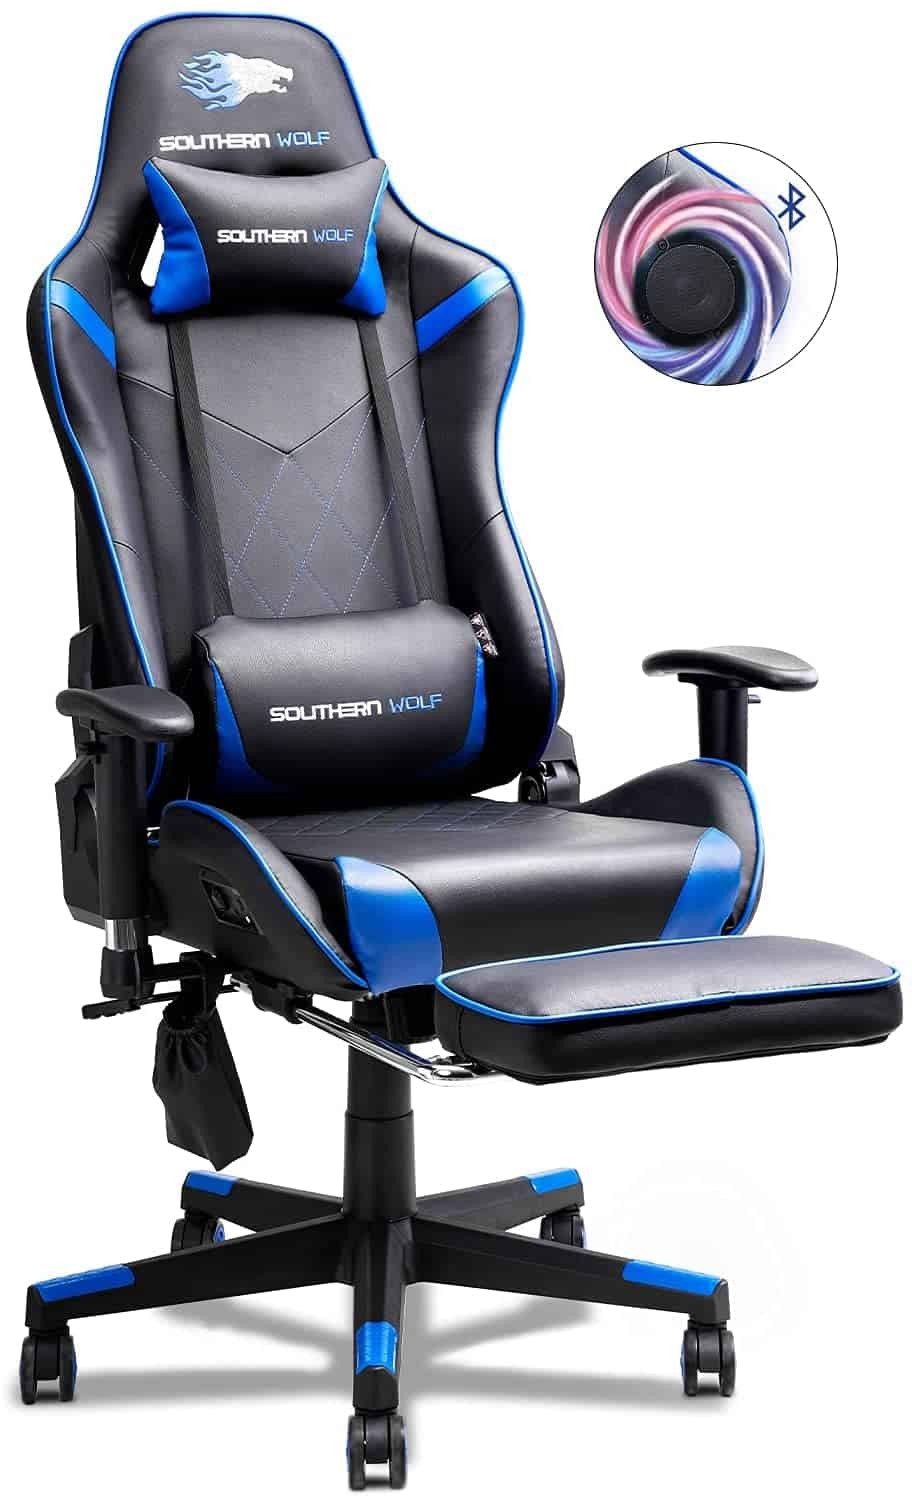 blue gaming chair with speakers